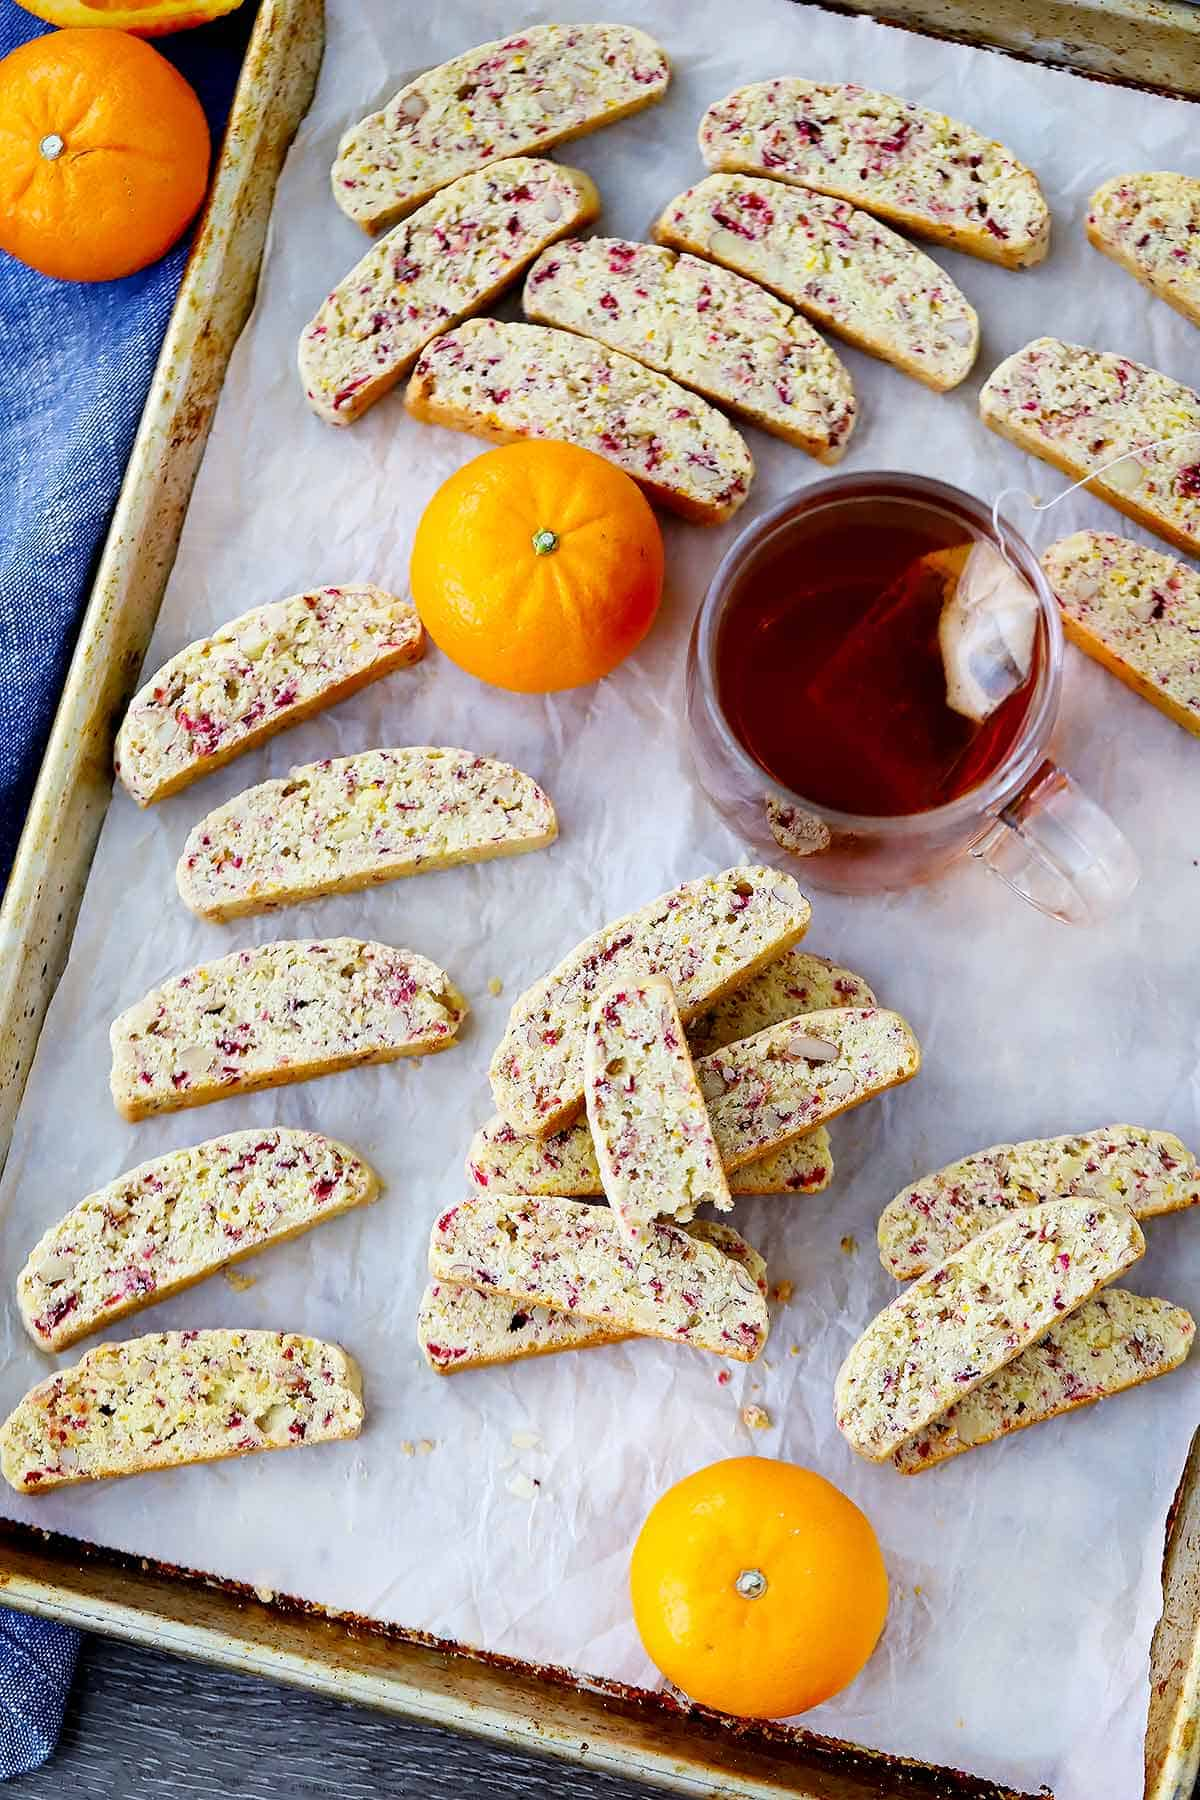 These cranberry orange biscotti are crunchy, tangy, sweet, and irresistible. ESPECIALLY when dunked in hot coffee. Great gift idea for the holidays!